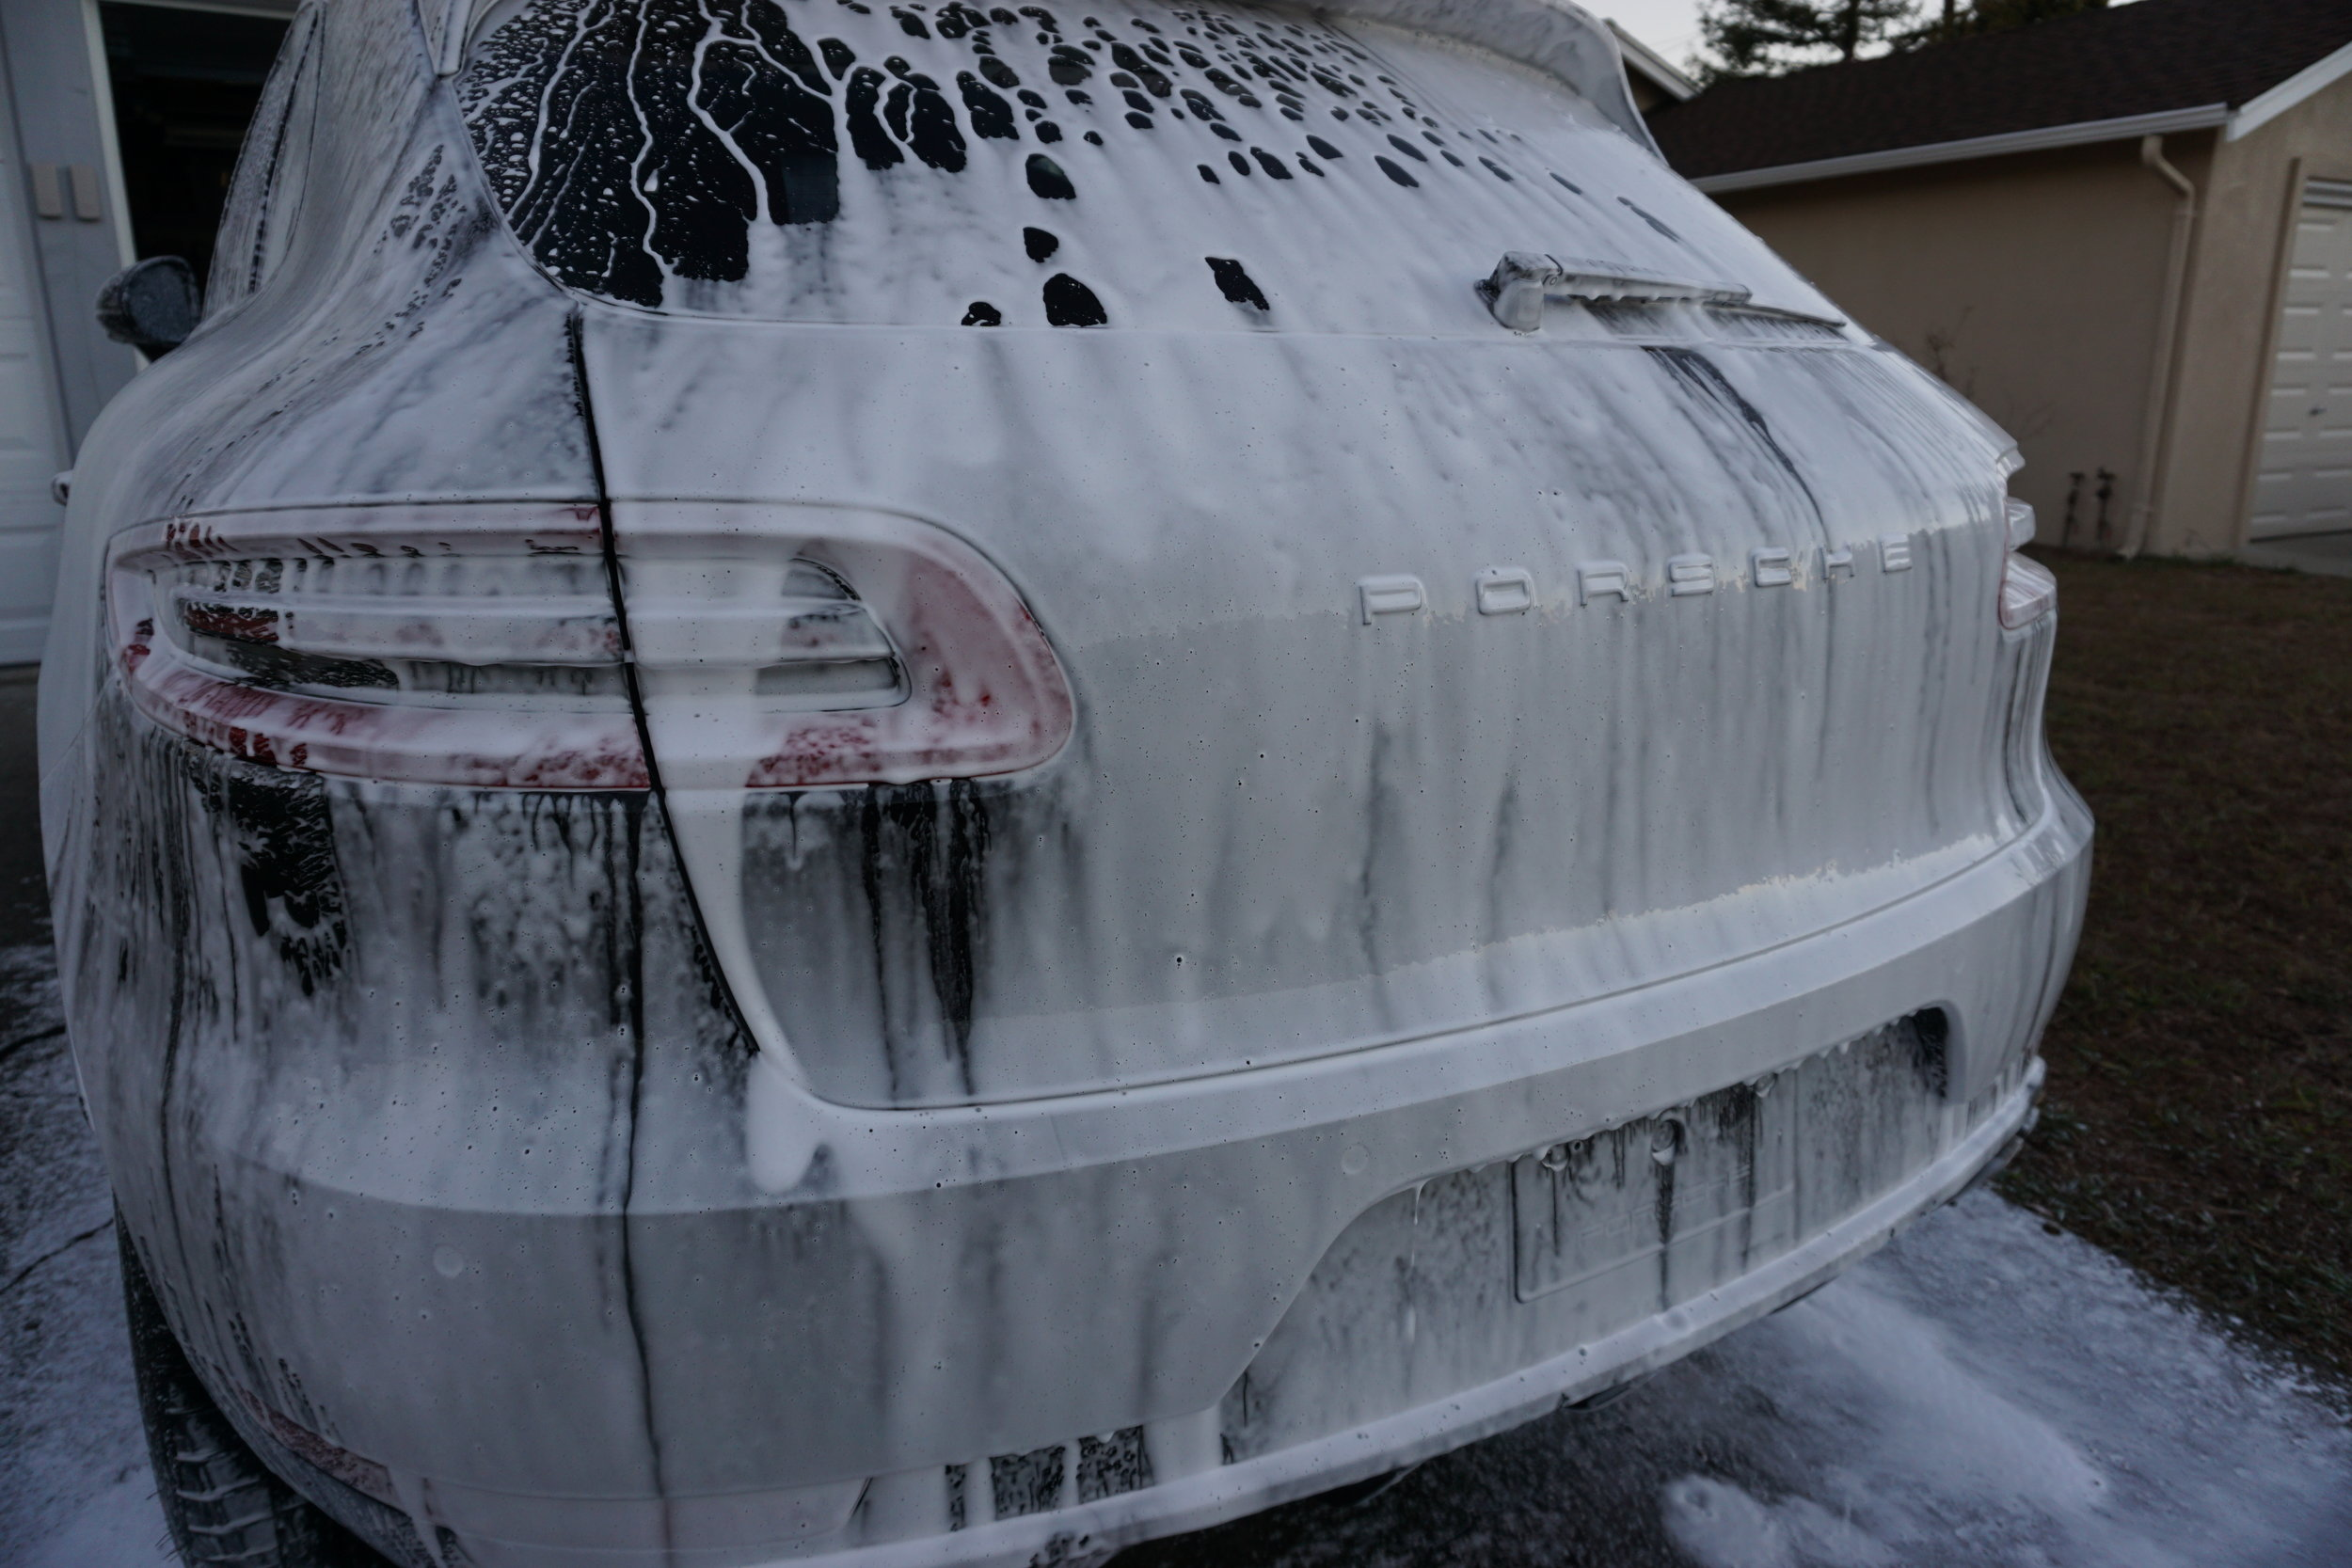 This macan turbo is playing in the snow